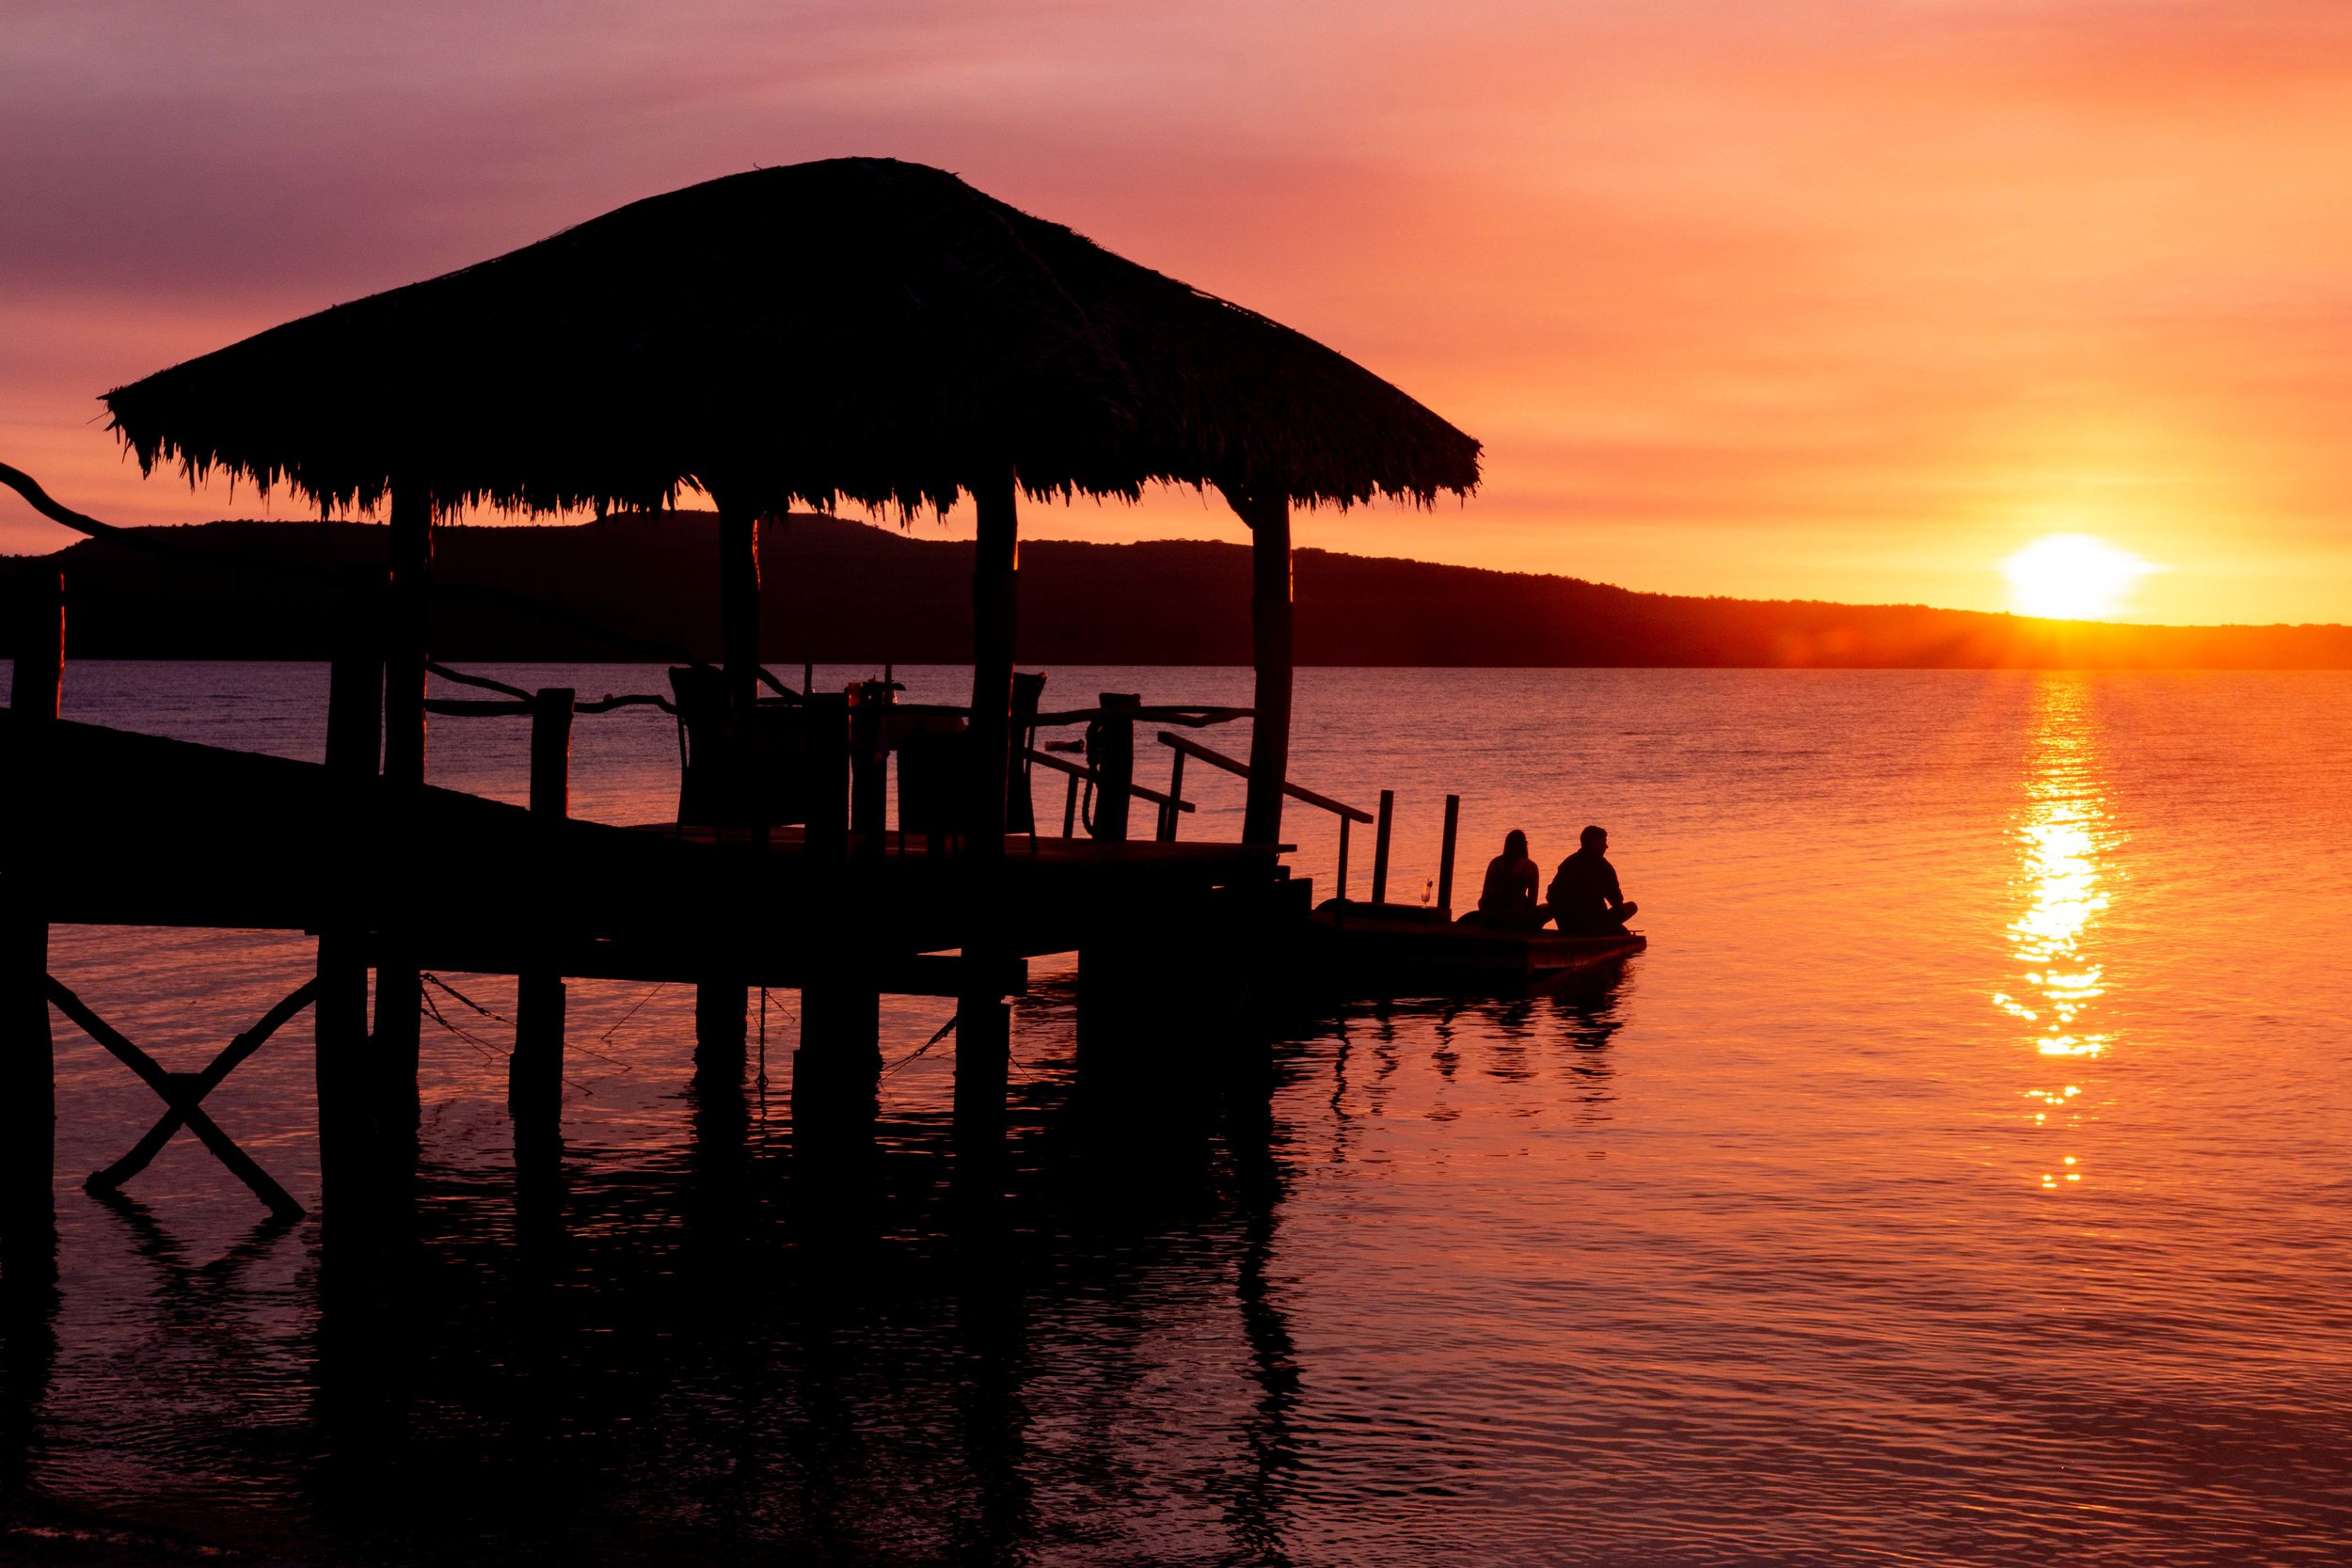 Sunset at The Havannah, Vanuatu